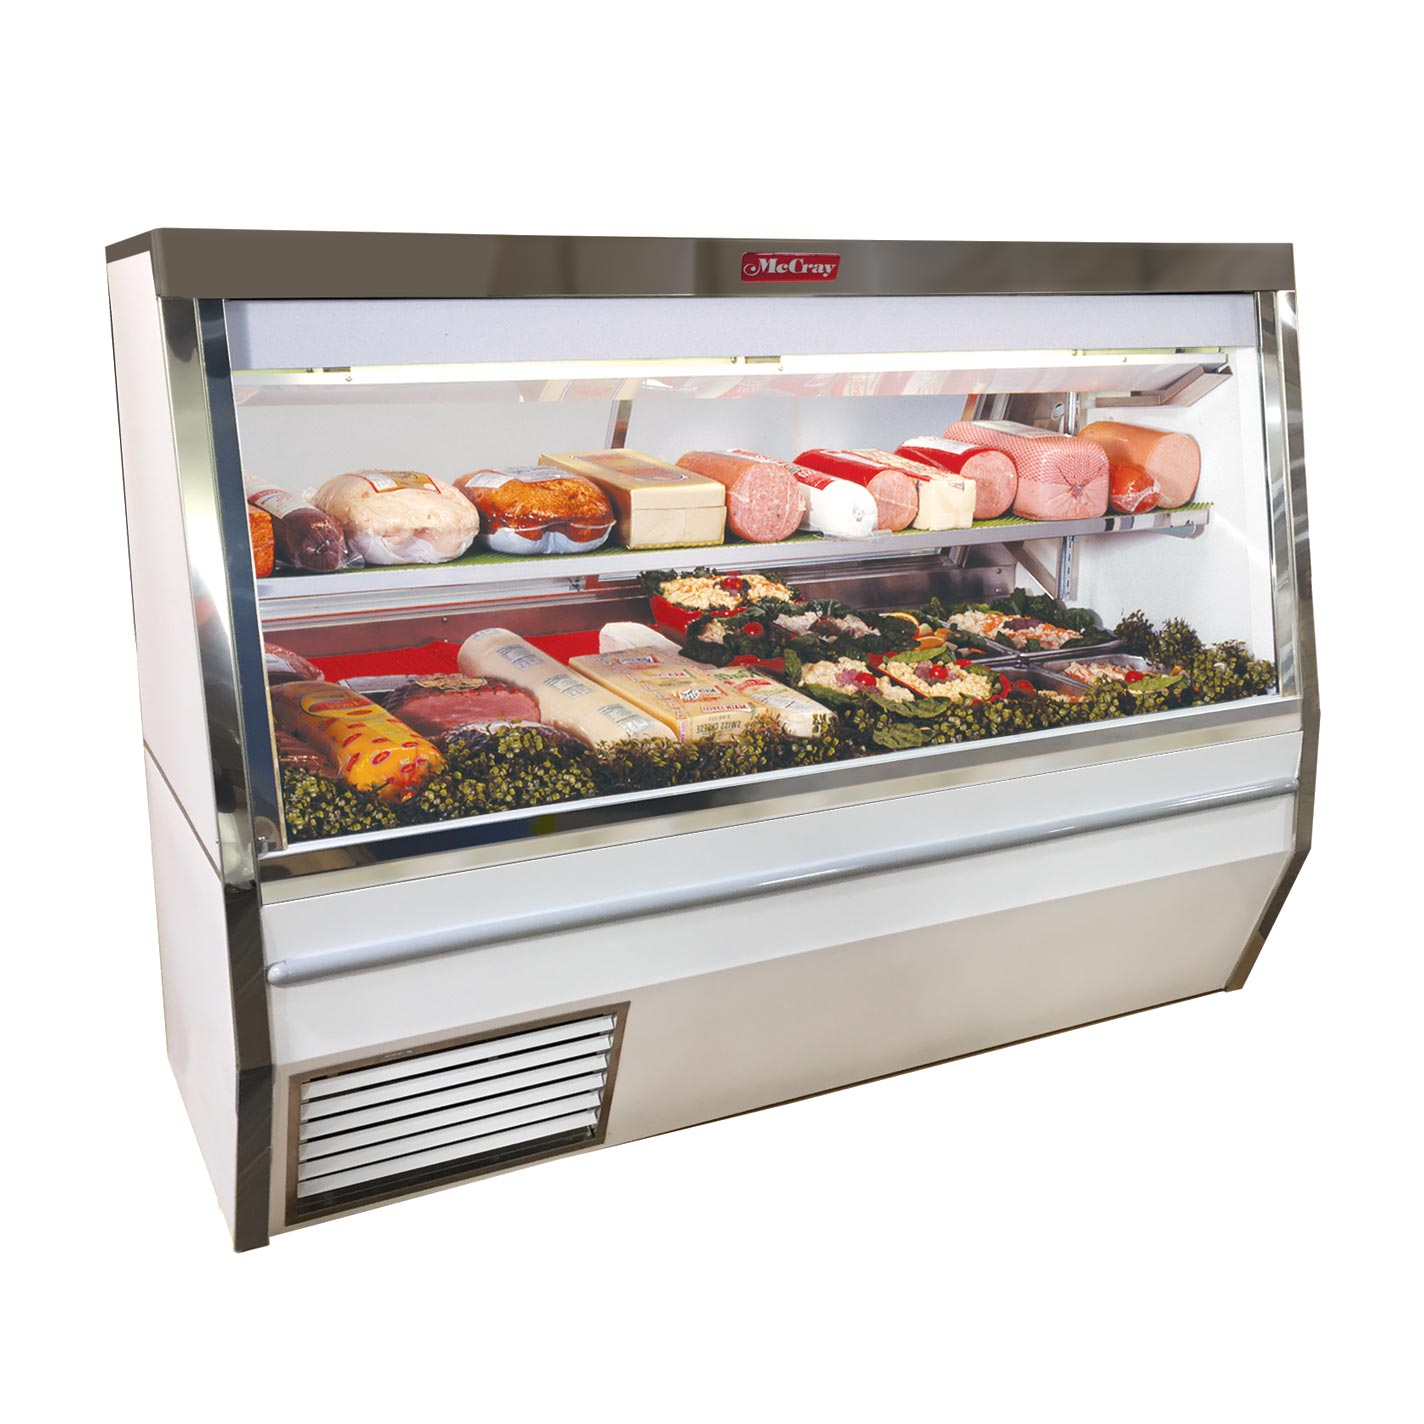 Howard-McCray R-CDS34N-12-BE-LS-LED display case, refrigerated deli